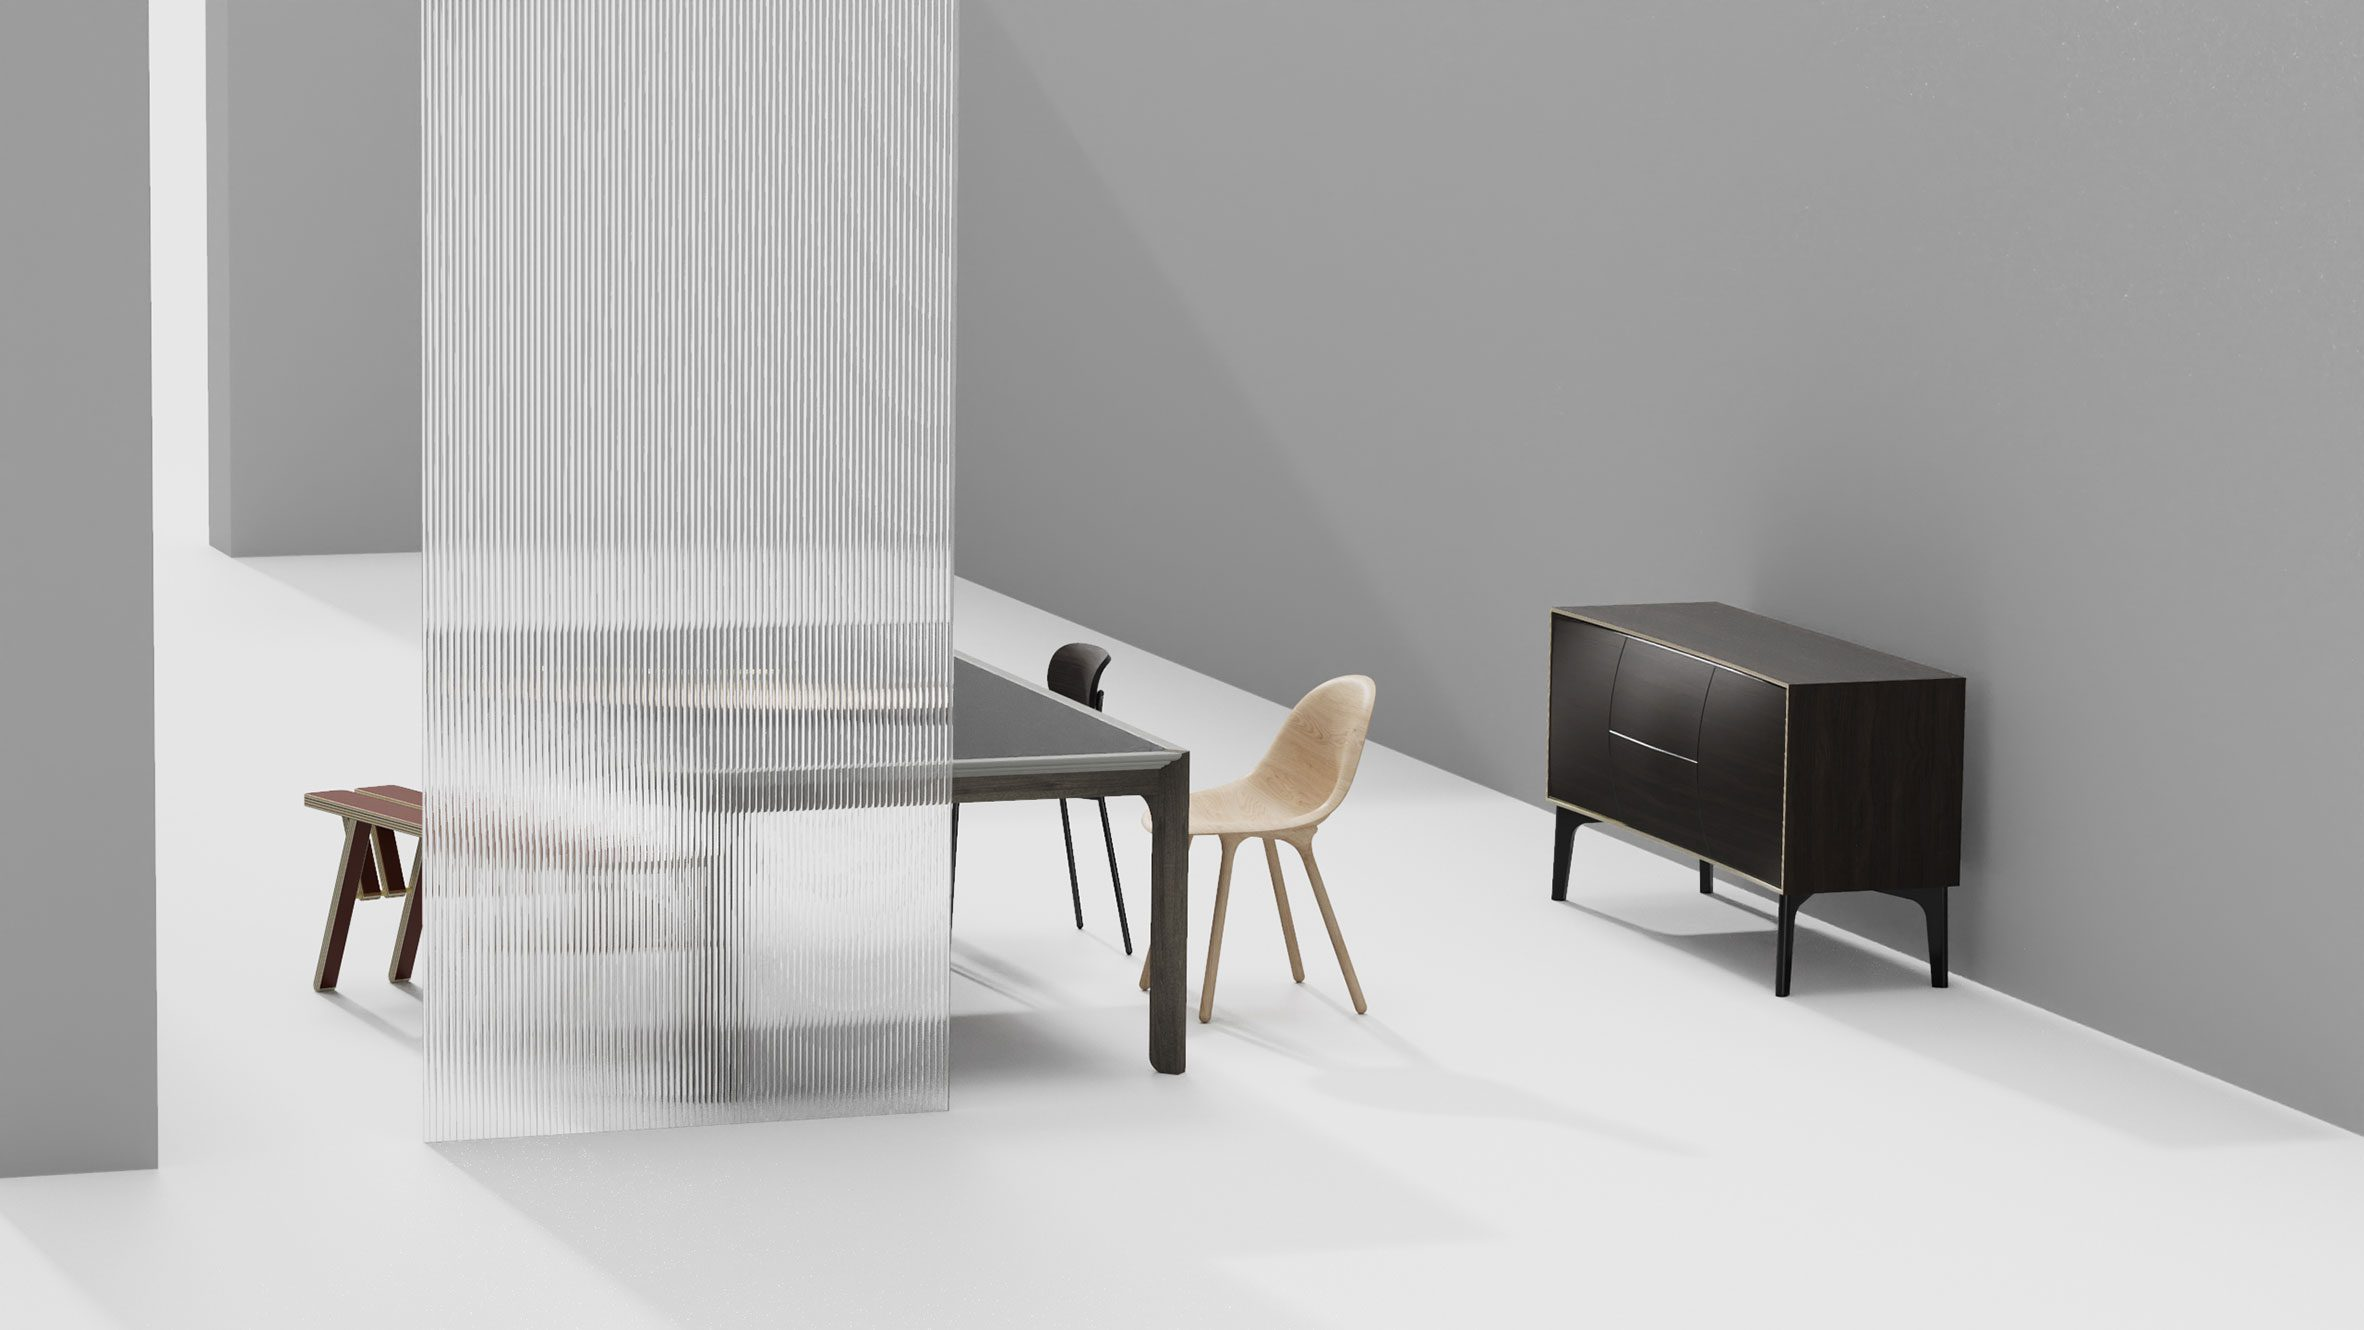 Furniture by XUE designed by Chen Min